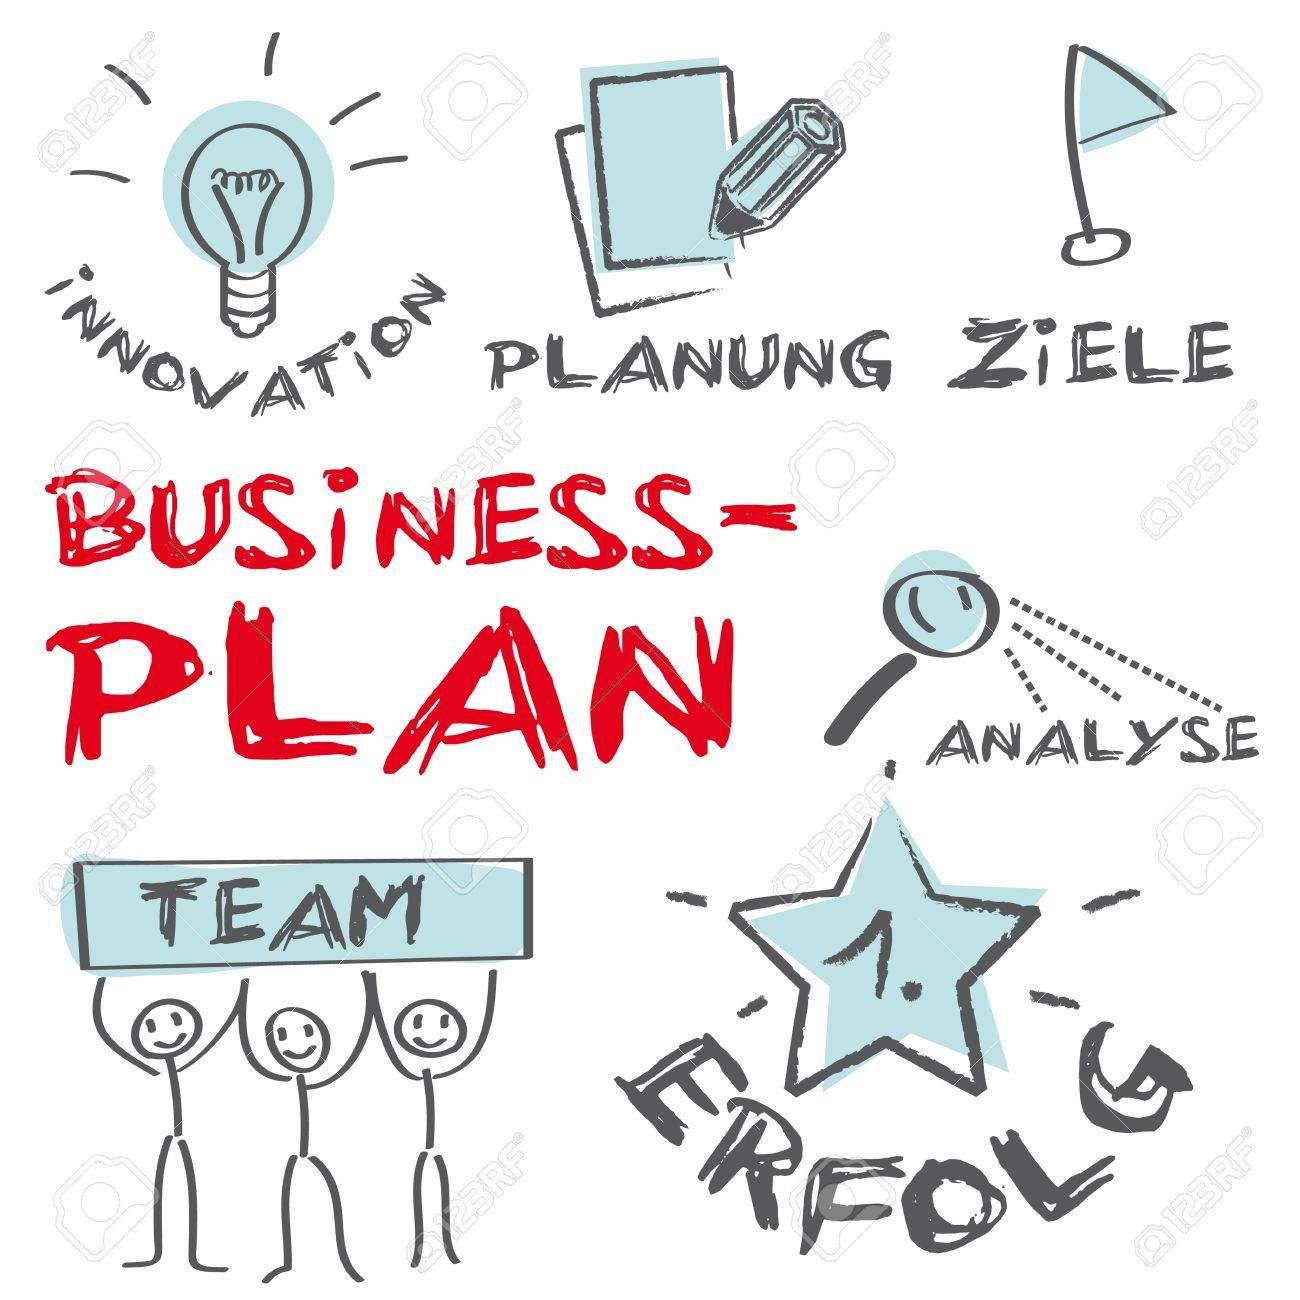 Business Plan Concept Building A Business Royalty Free Cliparts